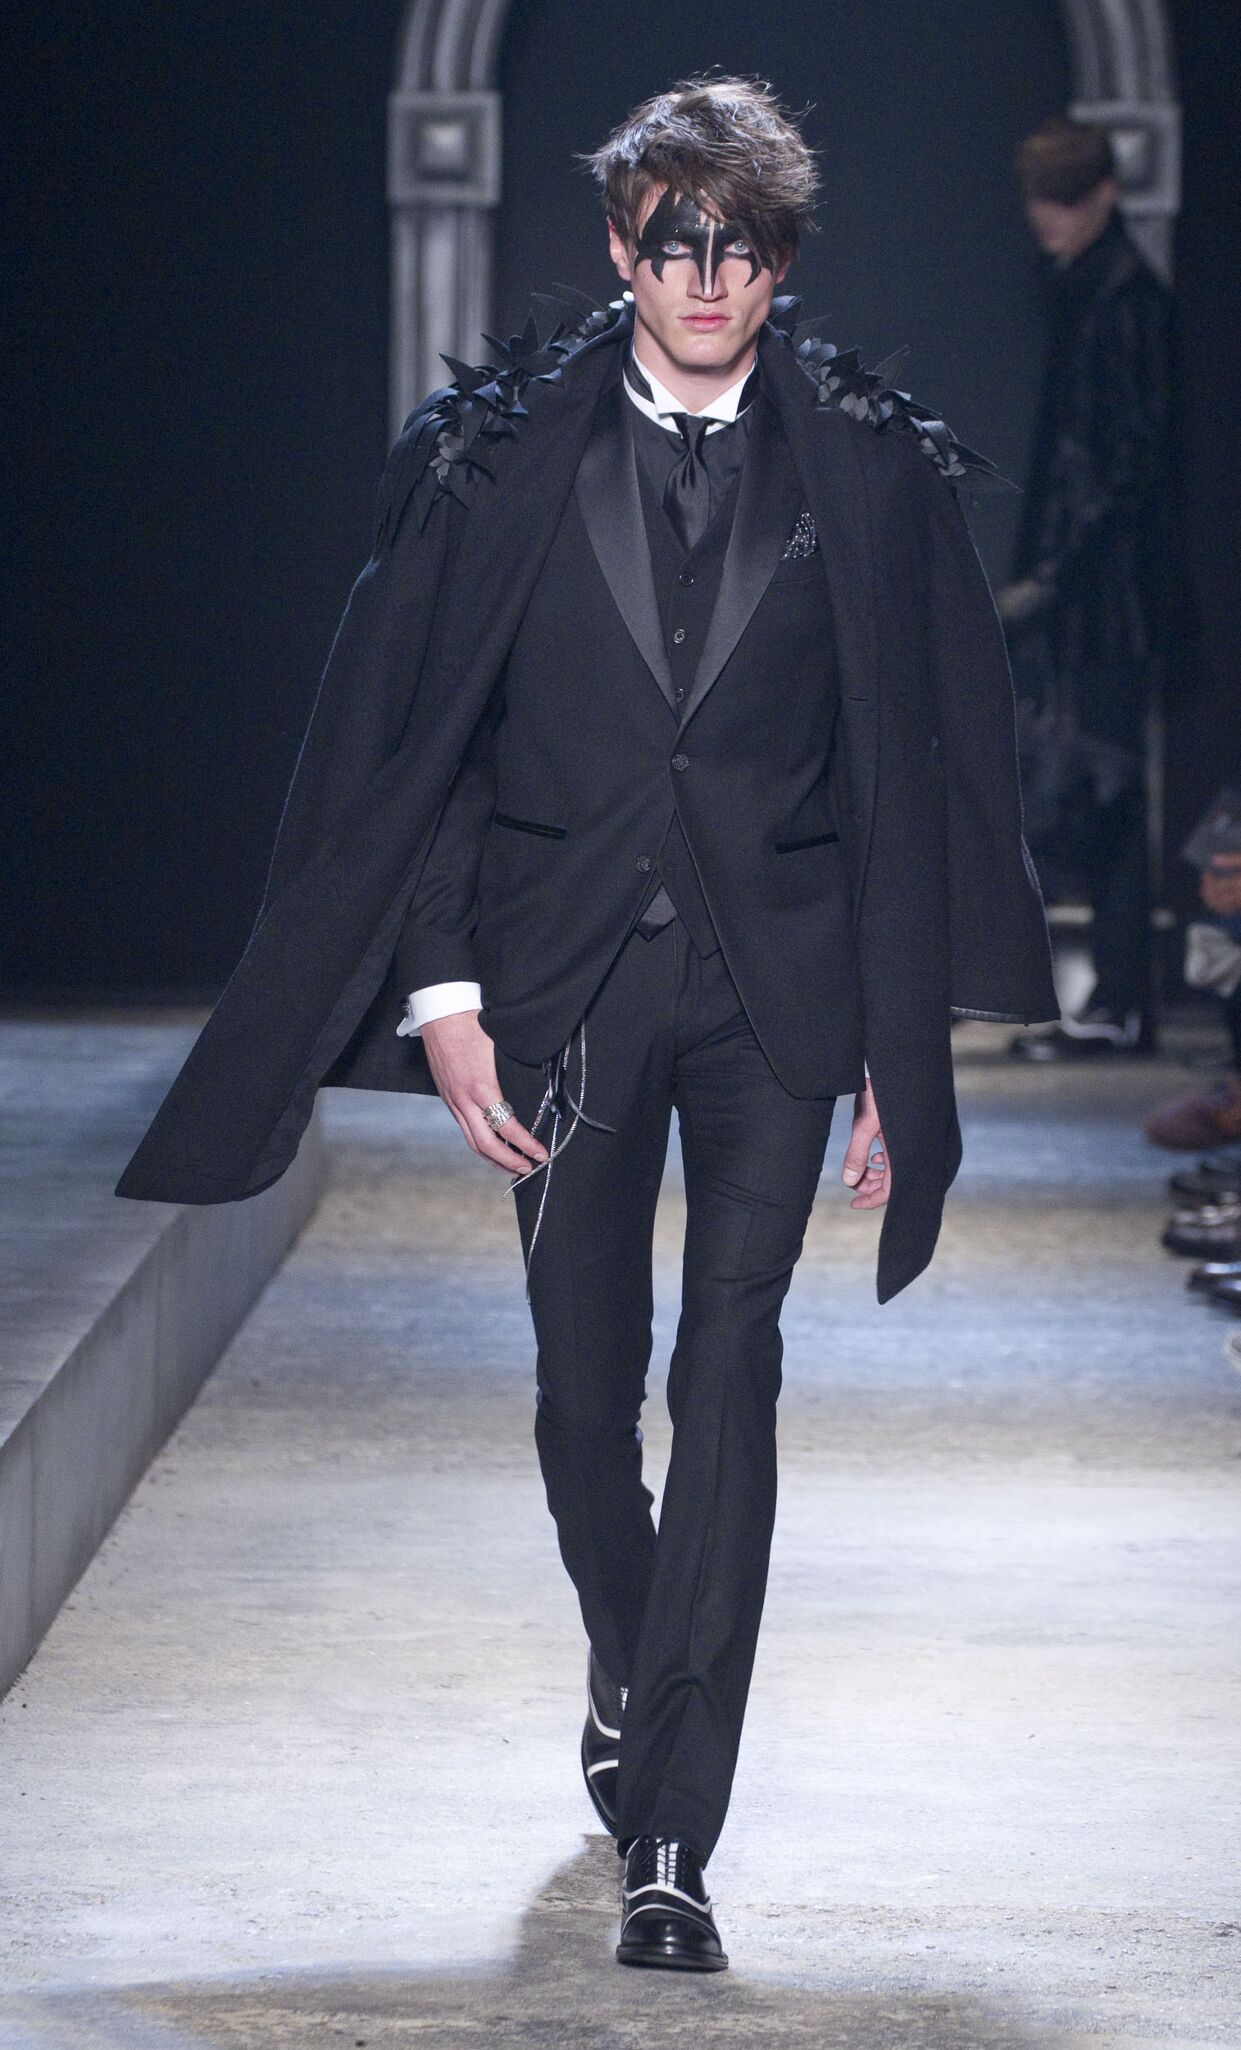 John Varvatos Fall Winter 2014 15 Men Collection Milan Fashion Week Fashion Show